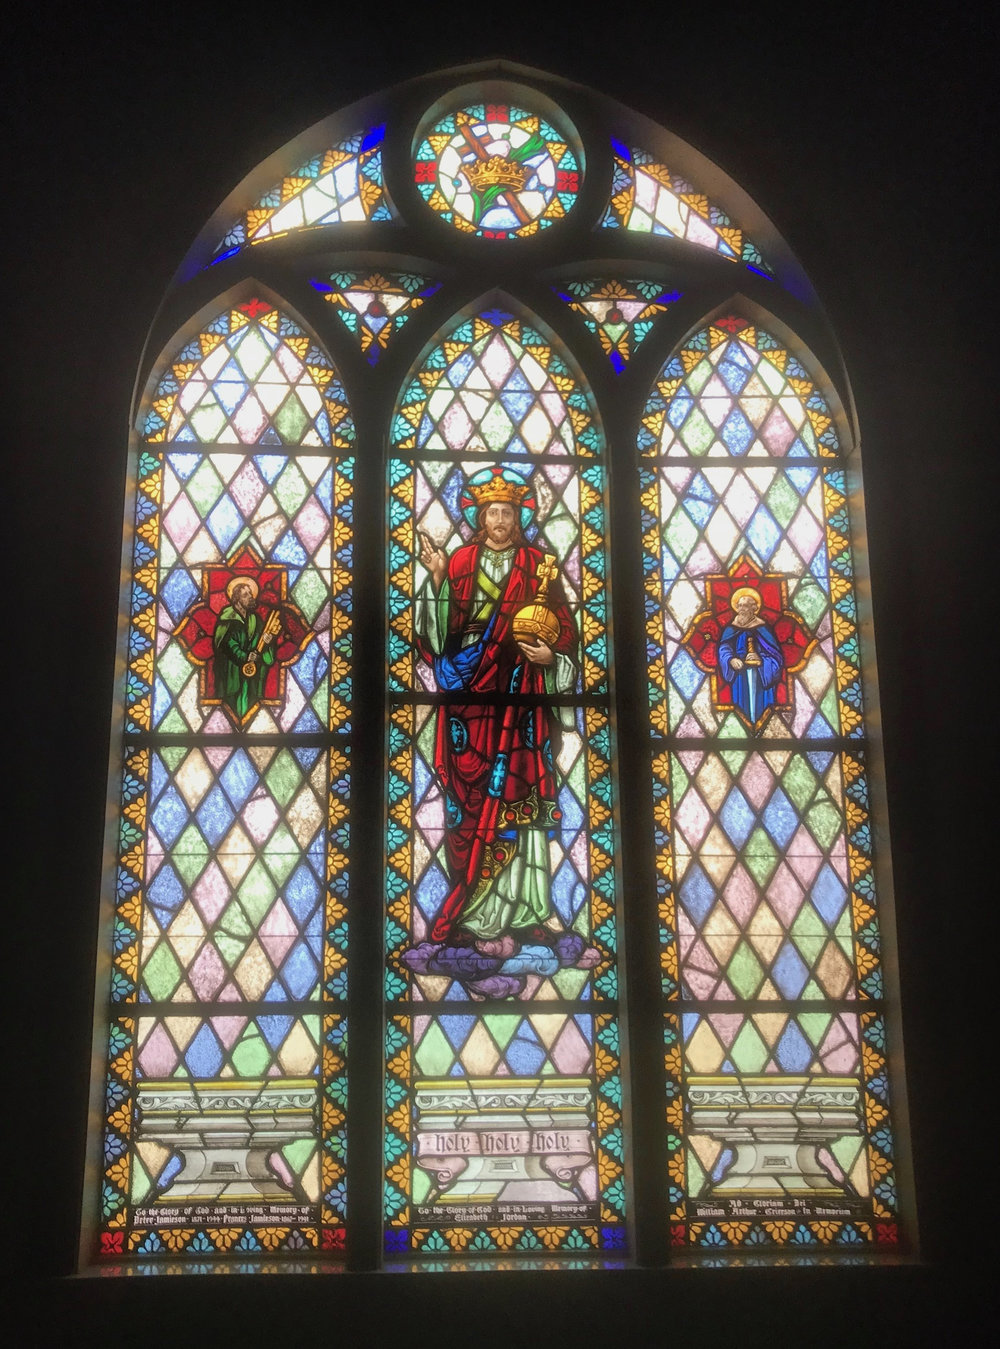 Christ the King Window at the Episcopal Church of the Good Shepherd in East Chicago, IN